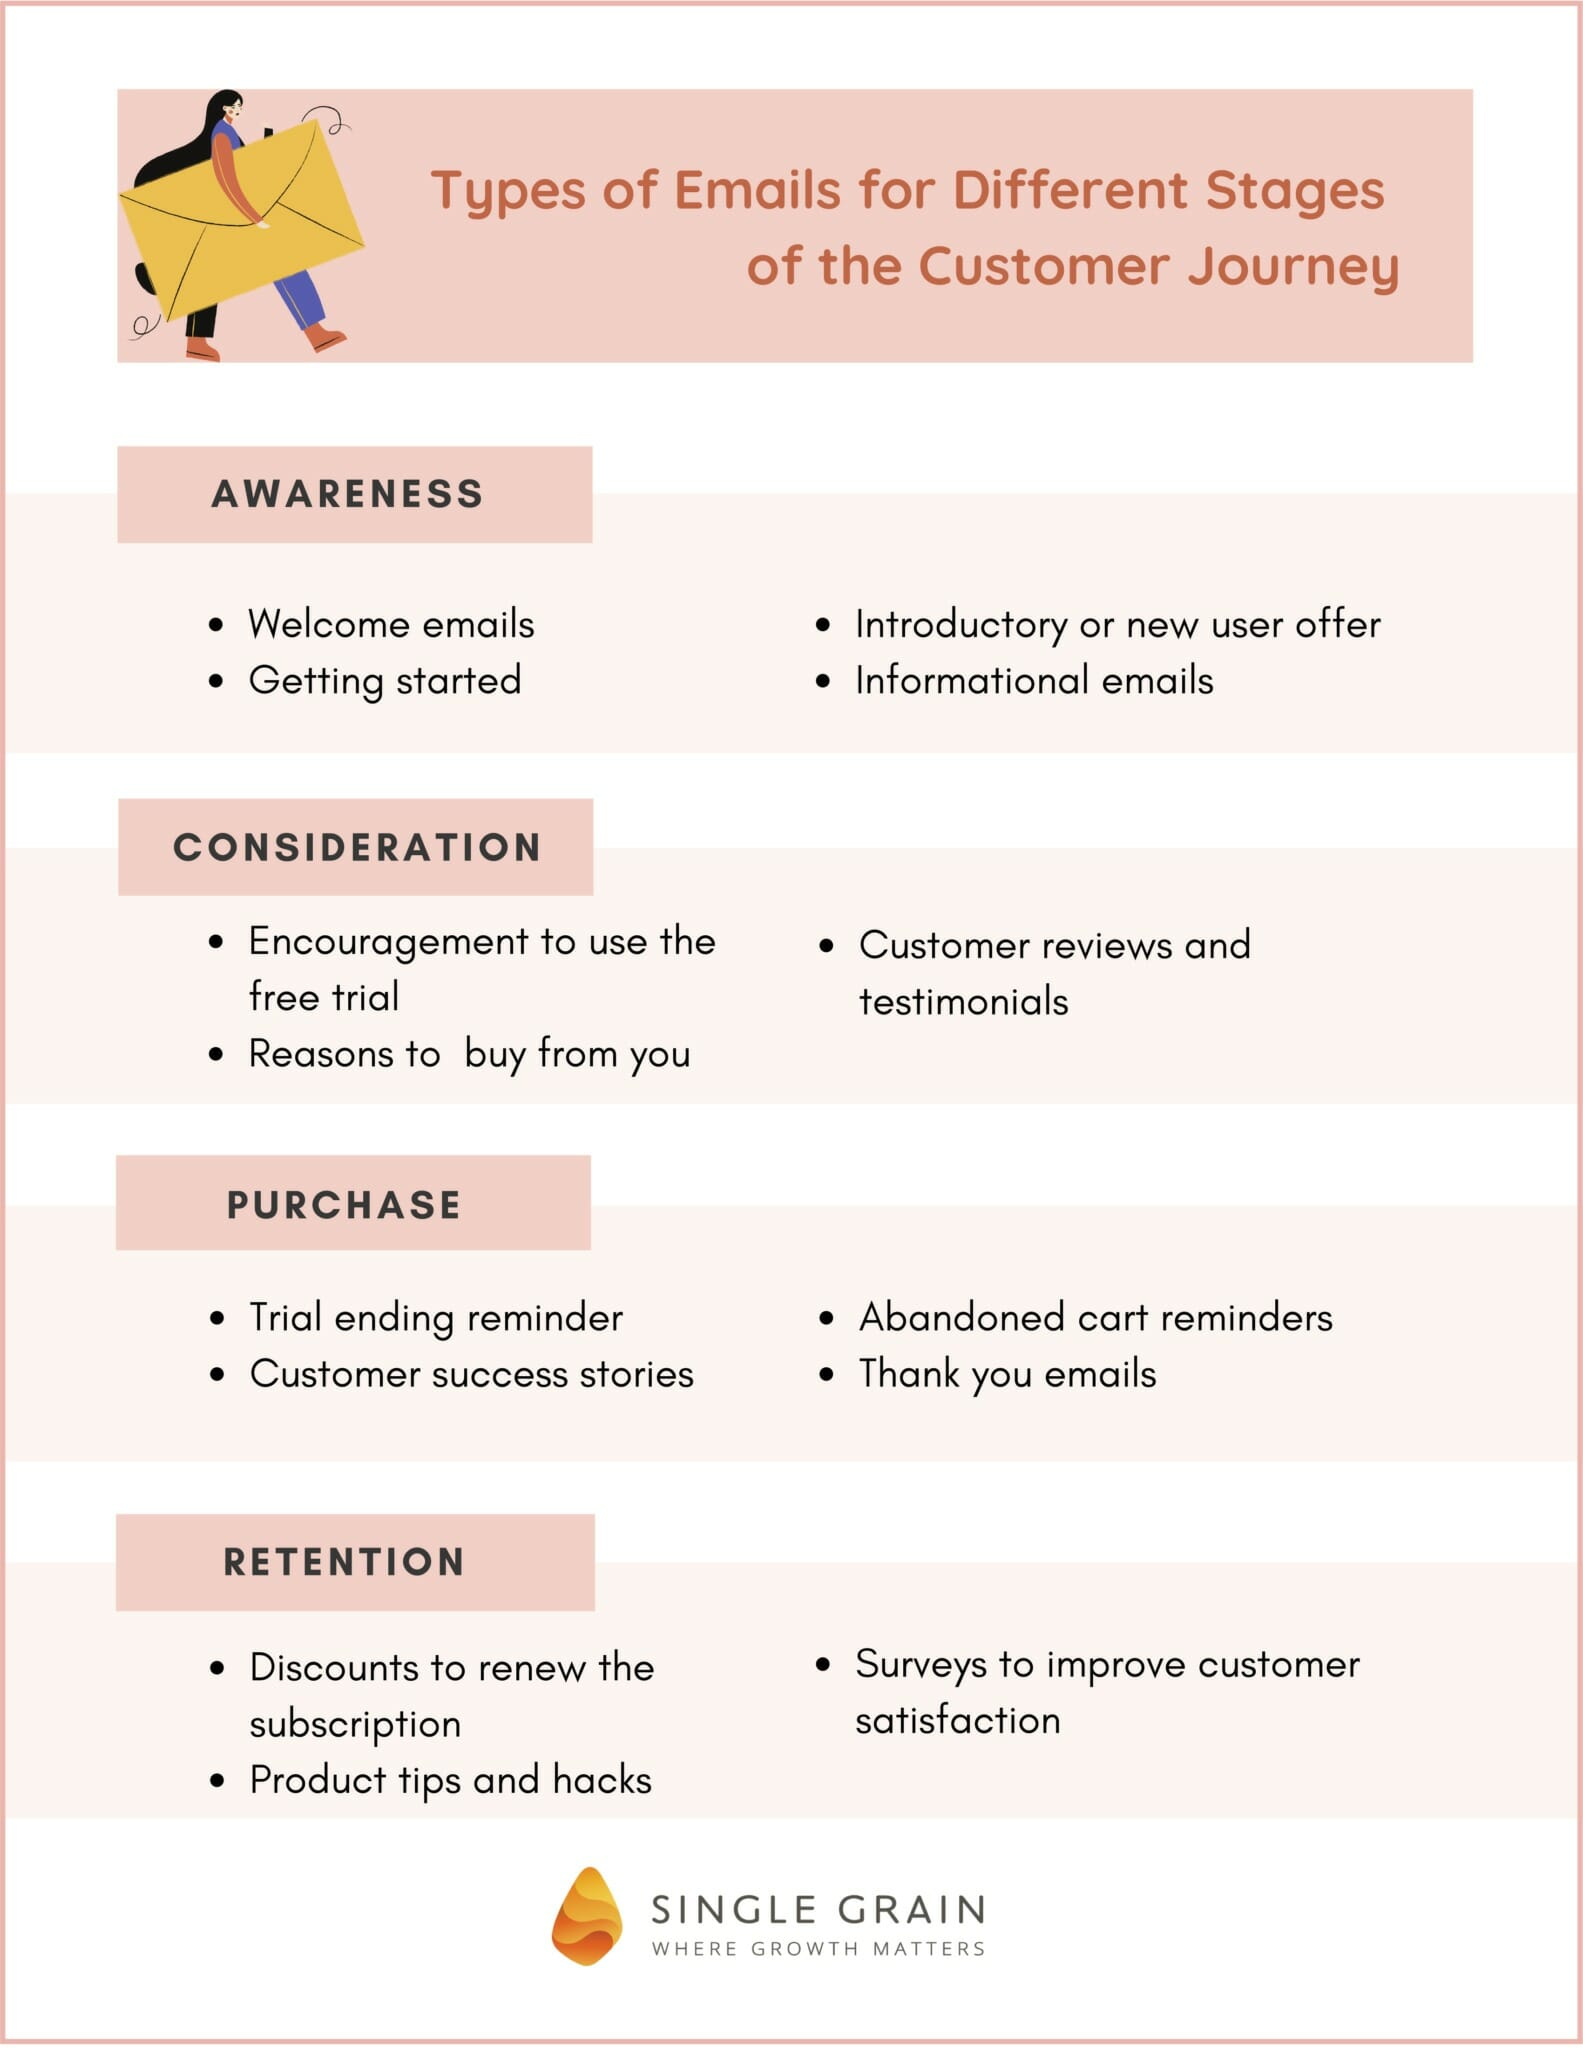 Types of Emails for Each Stage of the Customer Journey - Single Grain